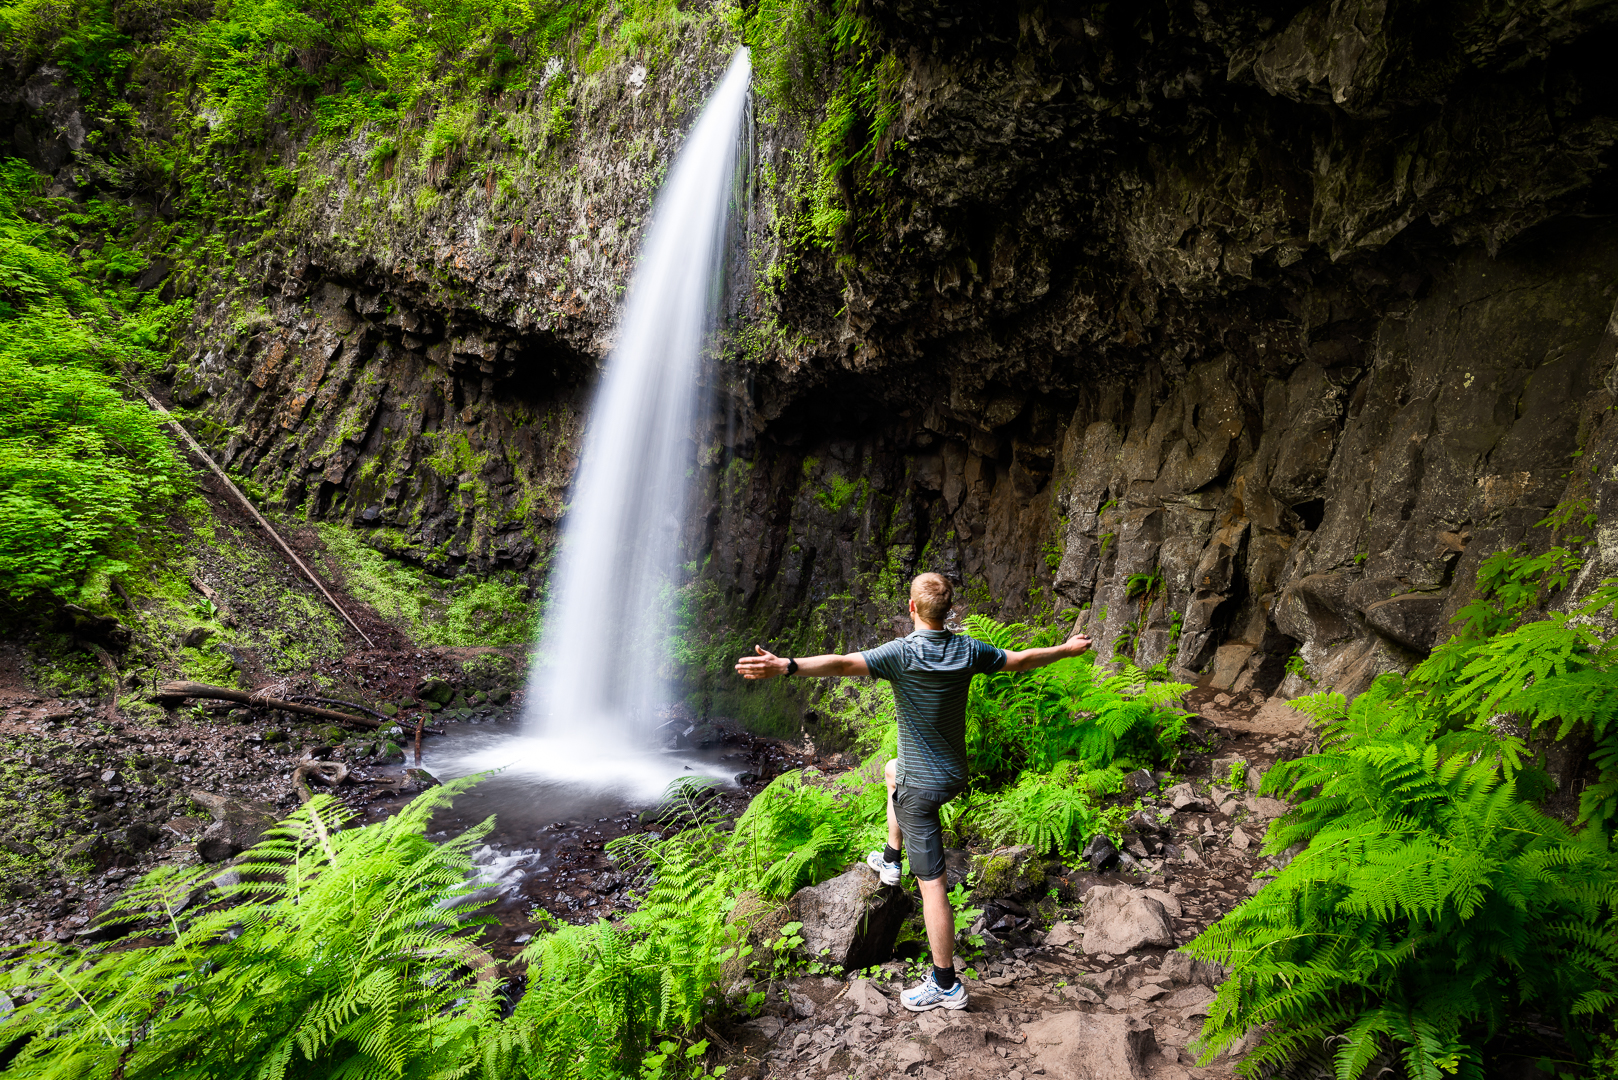 Upper Latourell Falls in the Columbia River Gorge - just couldn't resist posing in this green oasis!